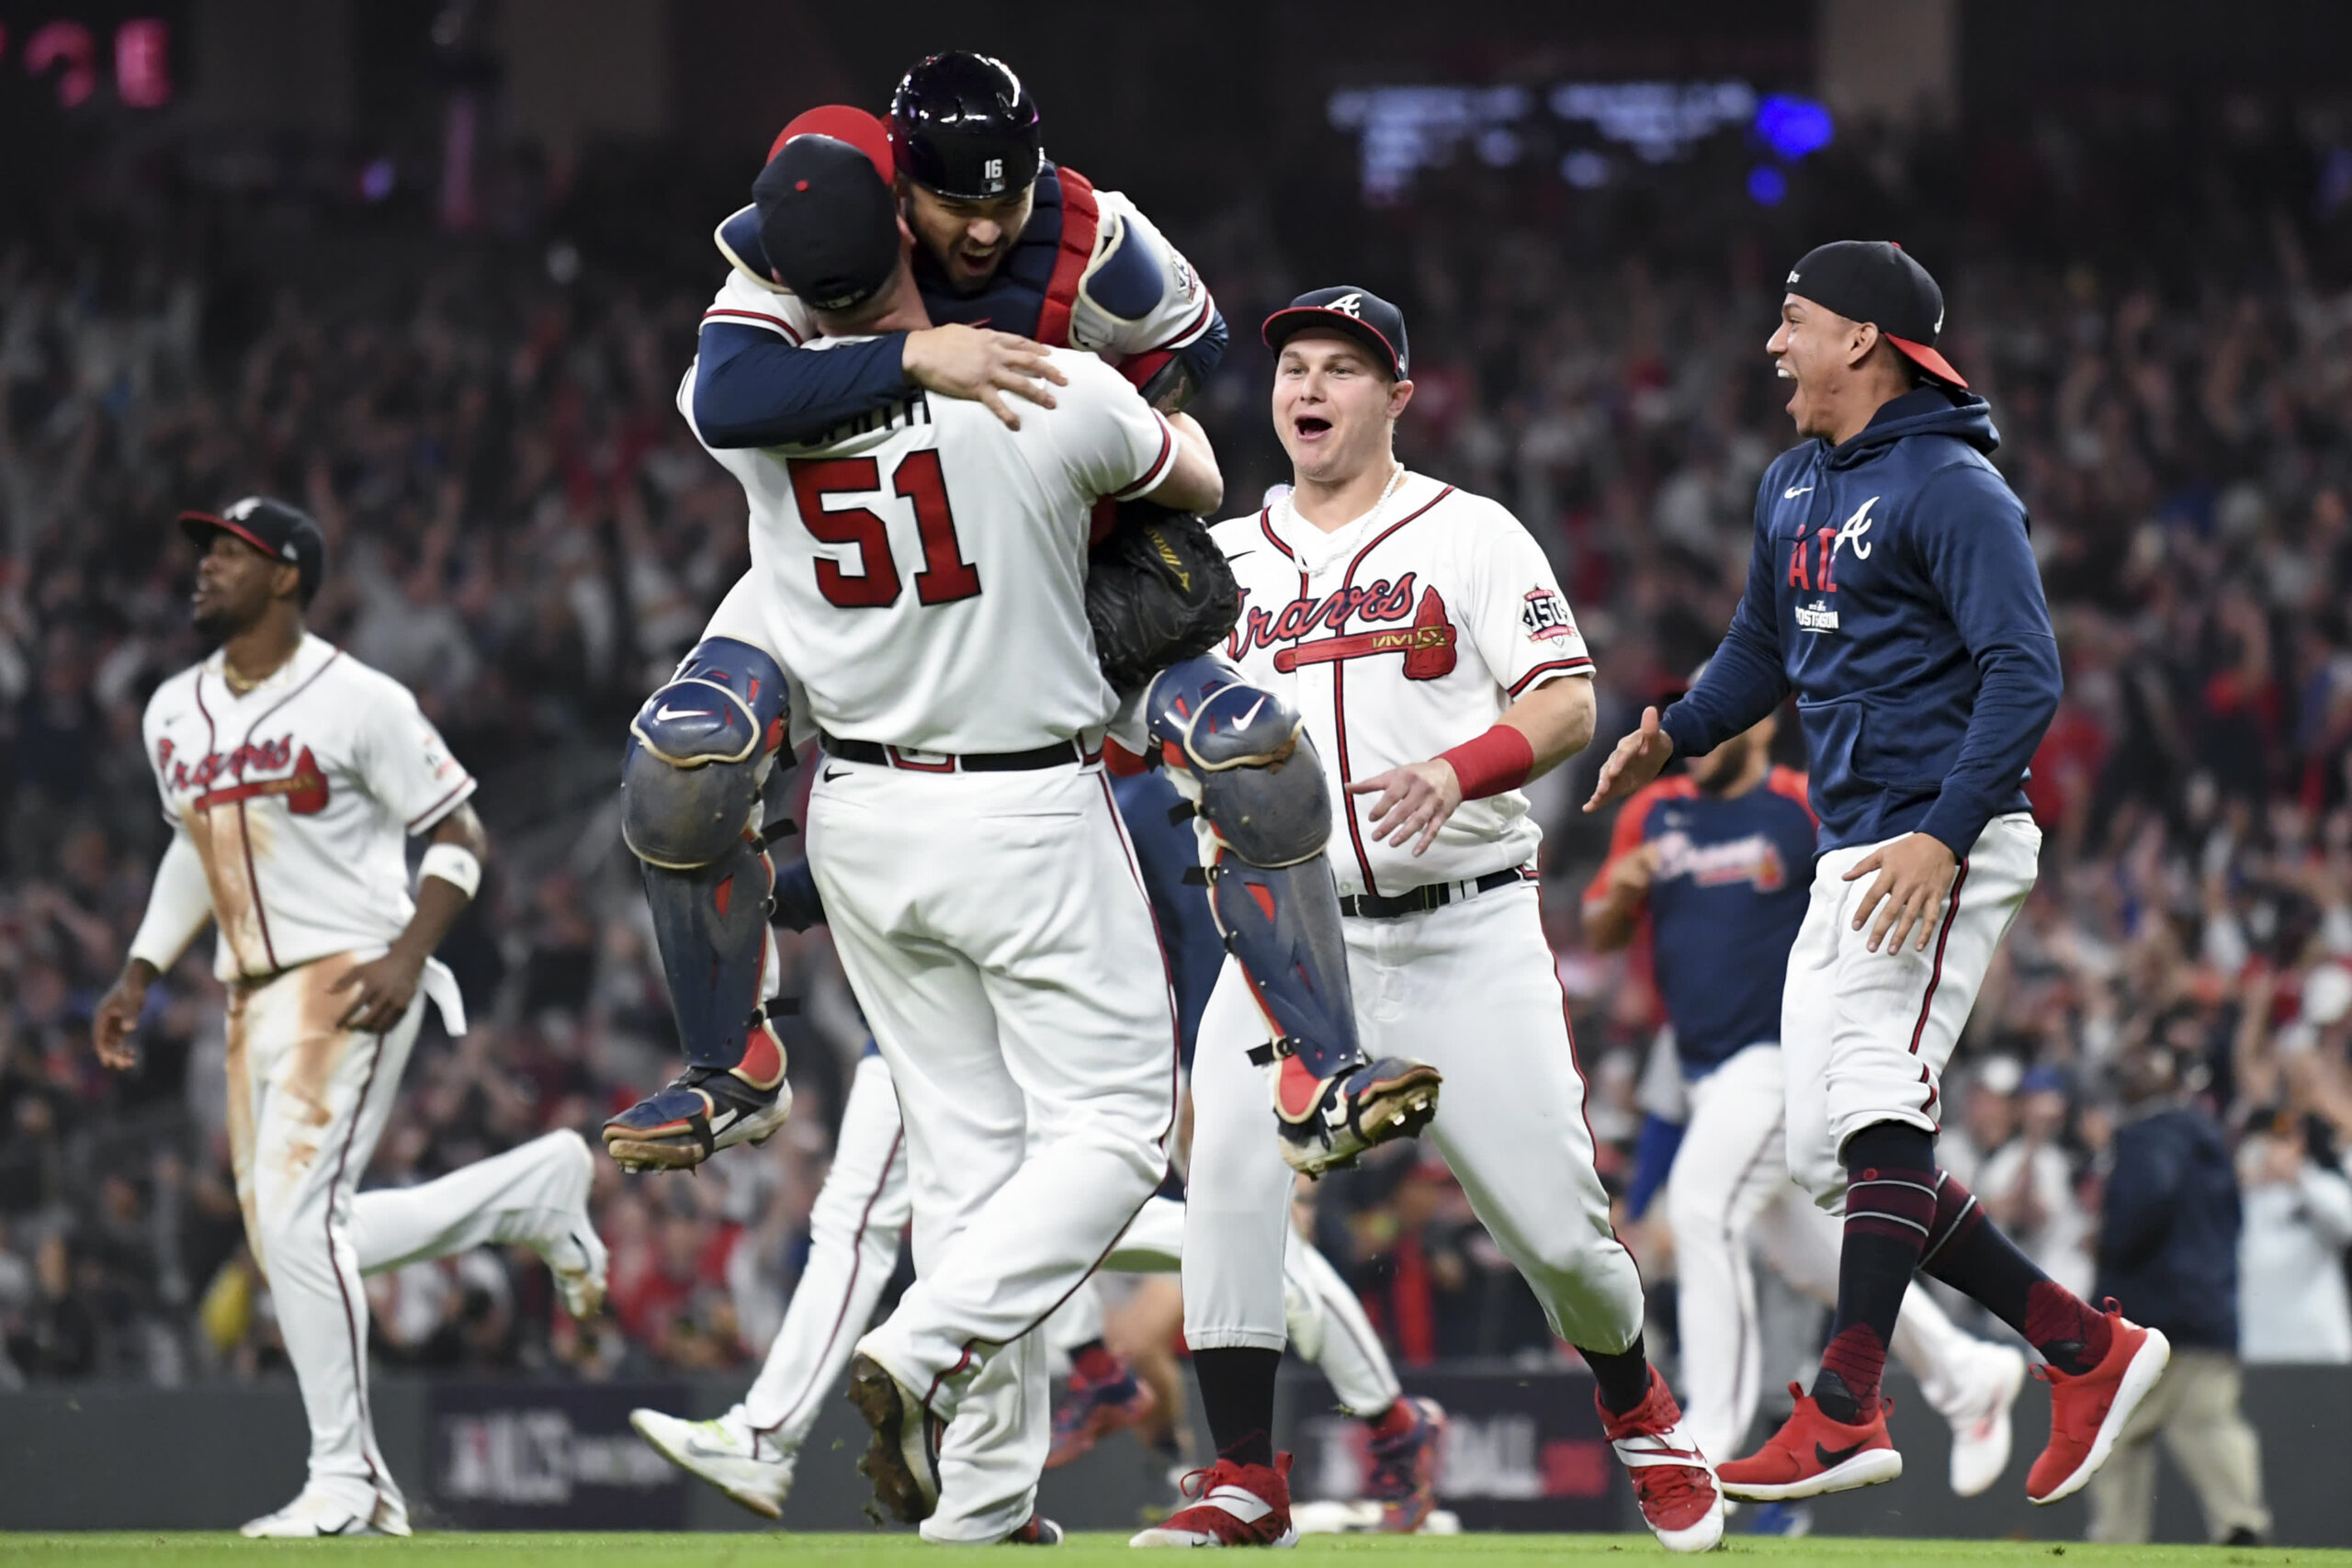 MLB caps rocky year with Braves vs. Astros title